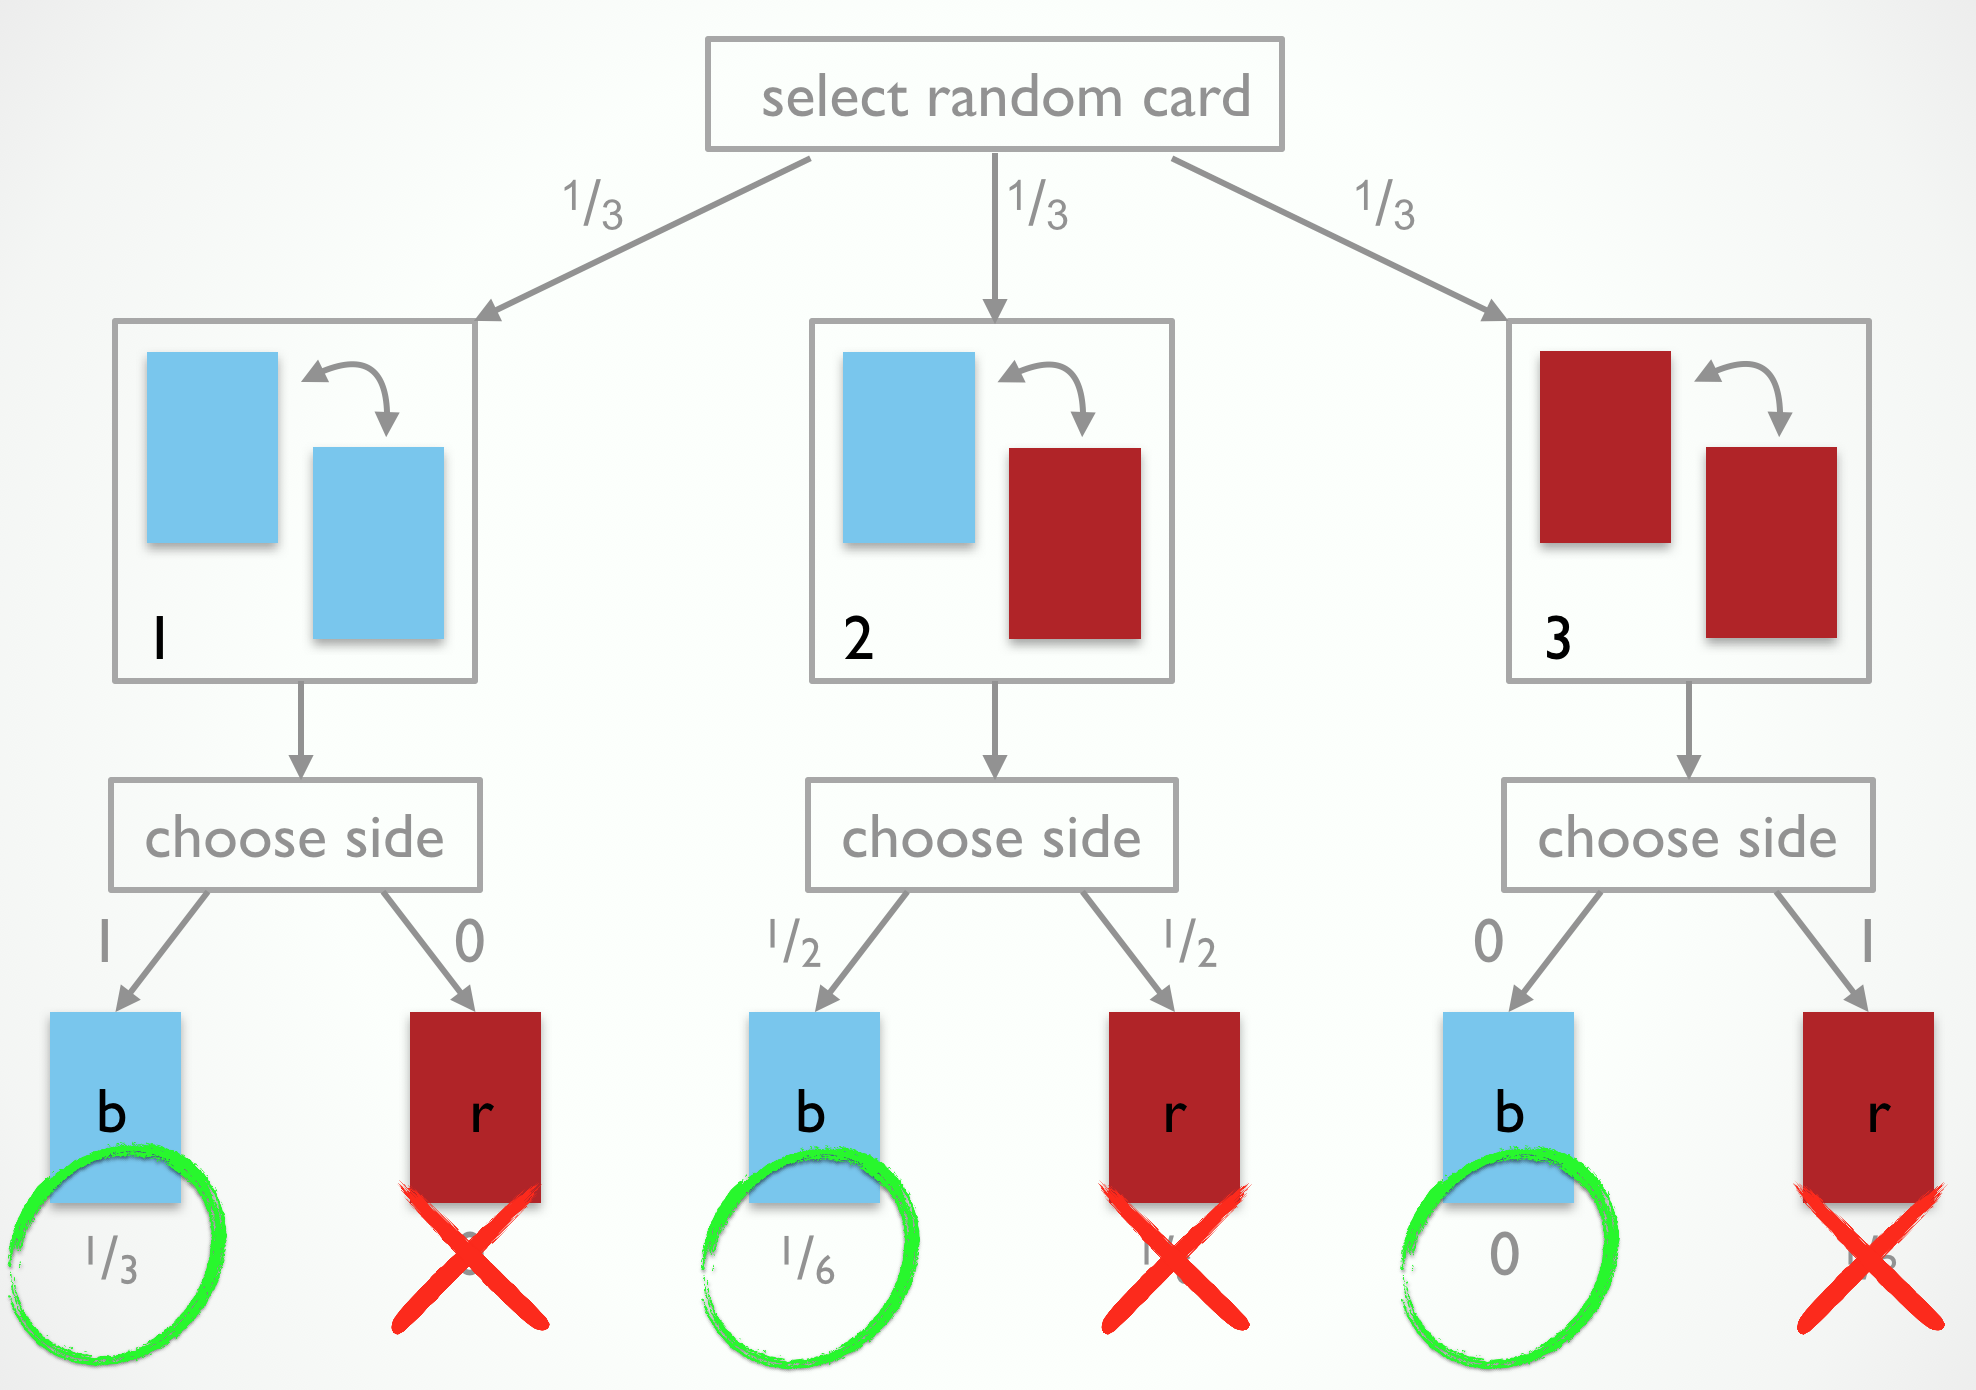 The observation-generating process for the 3-card problem after eliminating outcomes incompatible with the observation 'blue'.